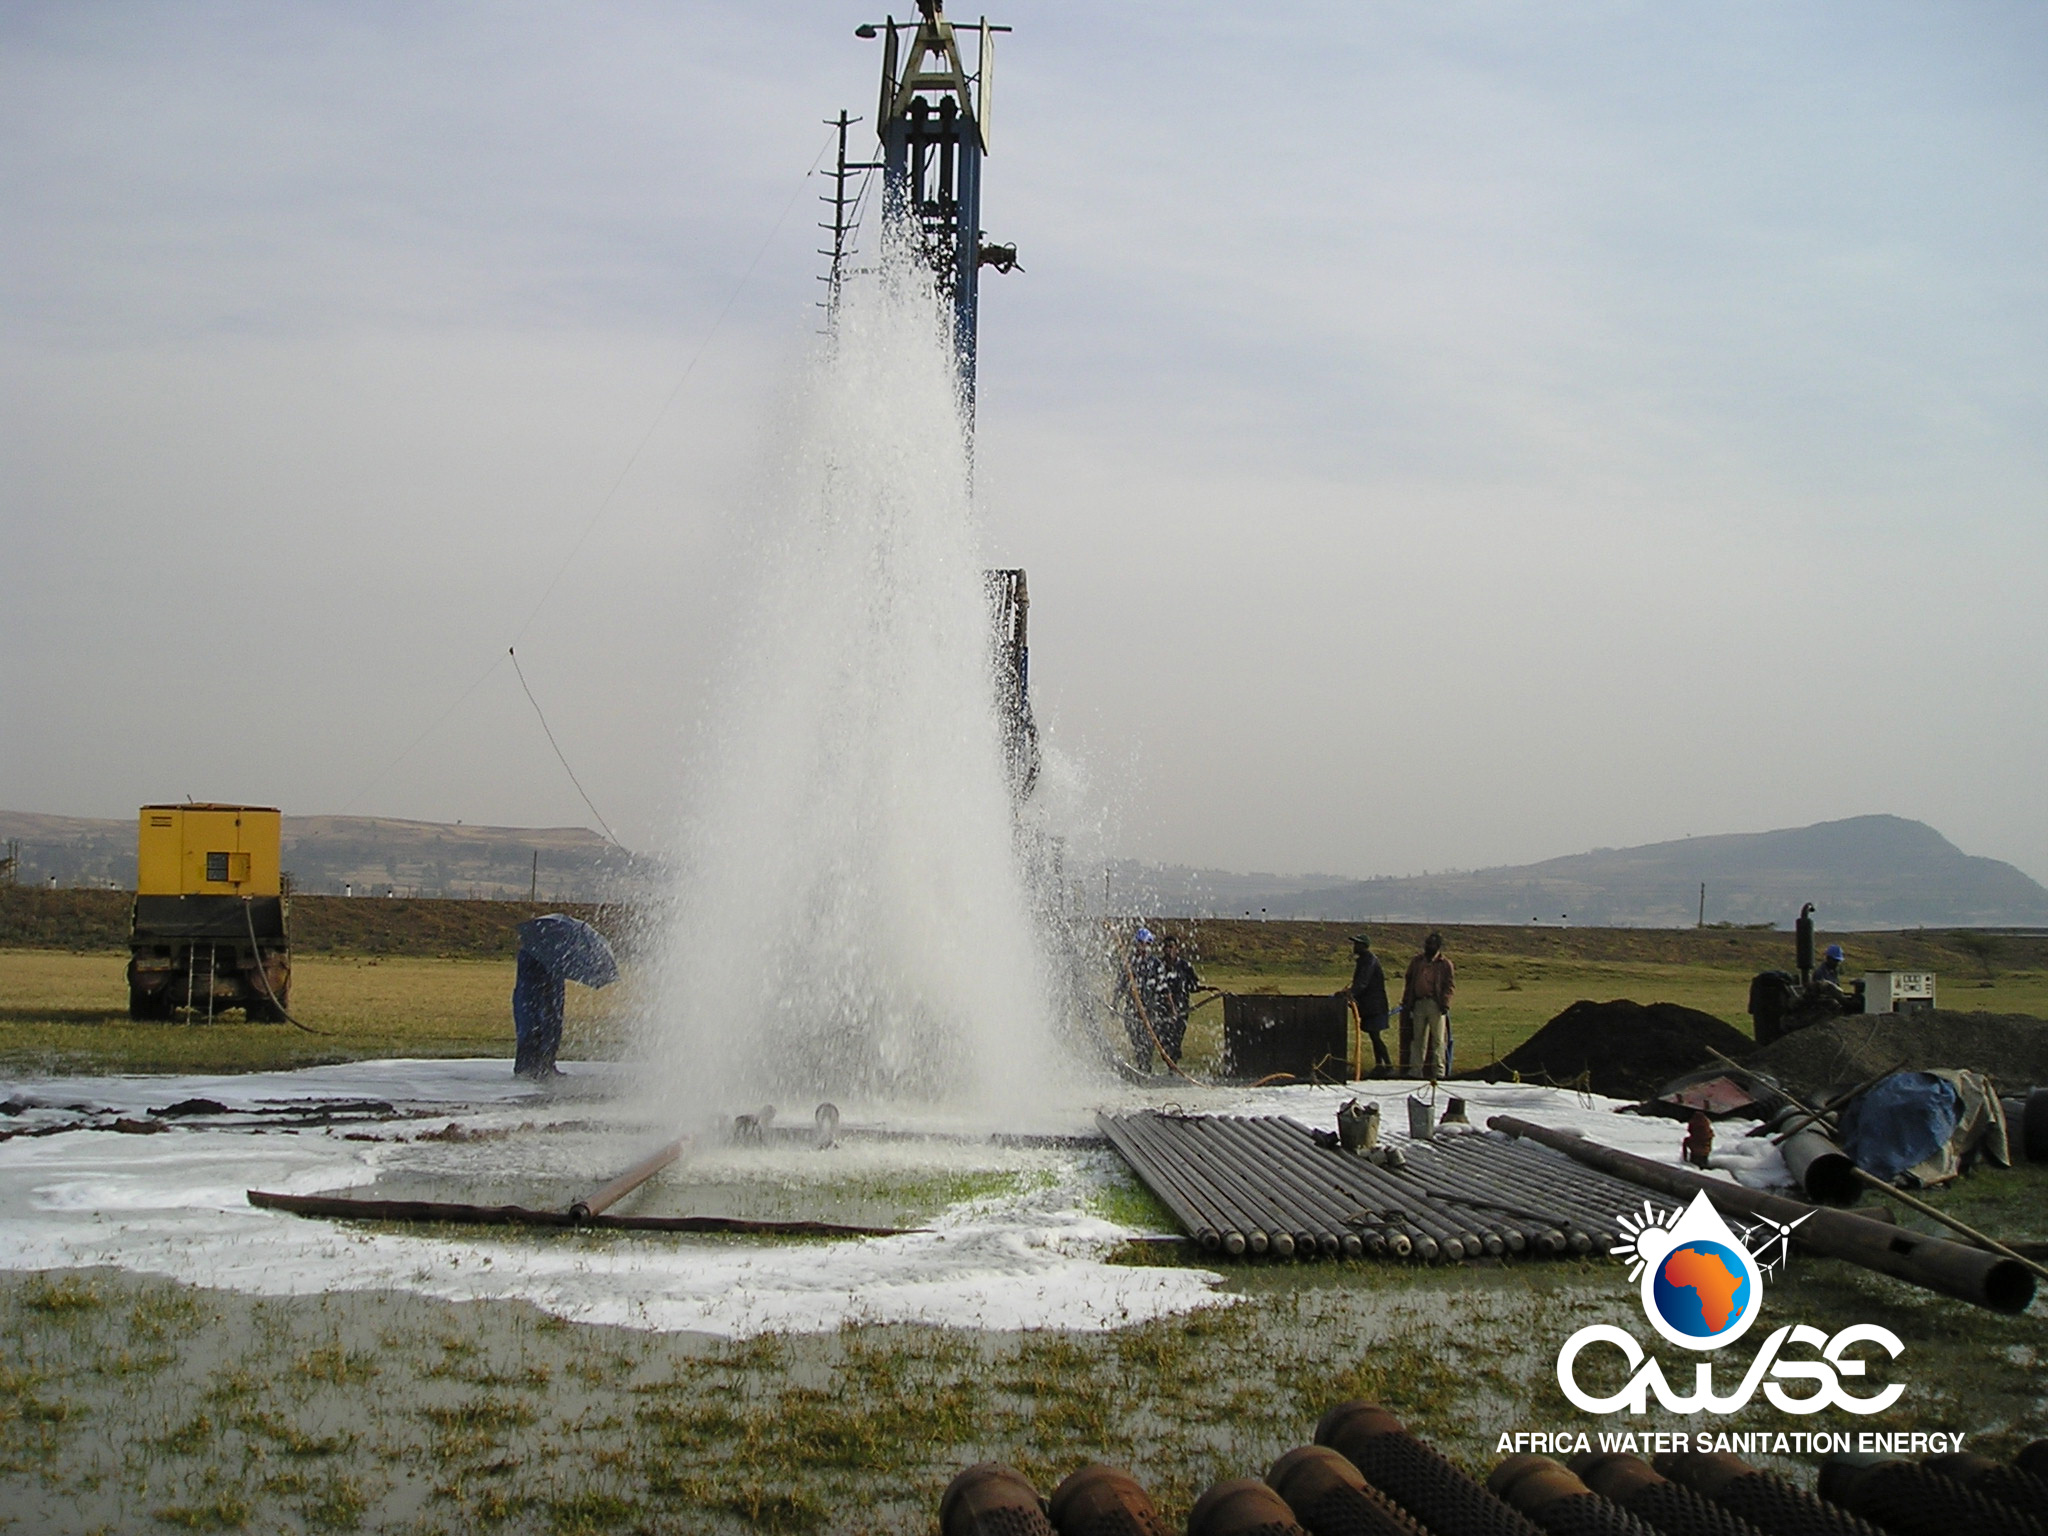 Drilling water wells